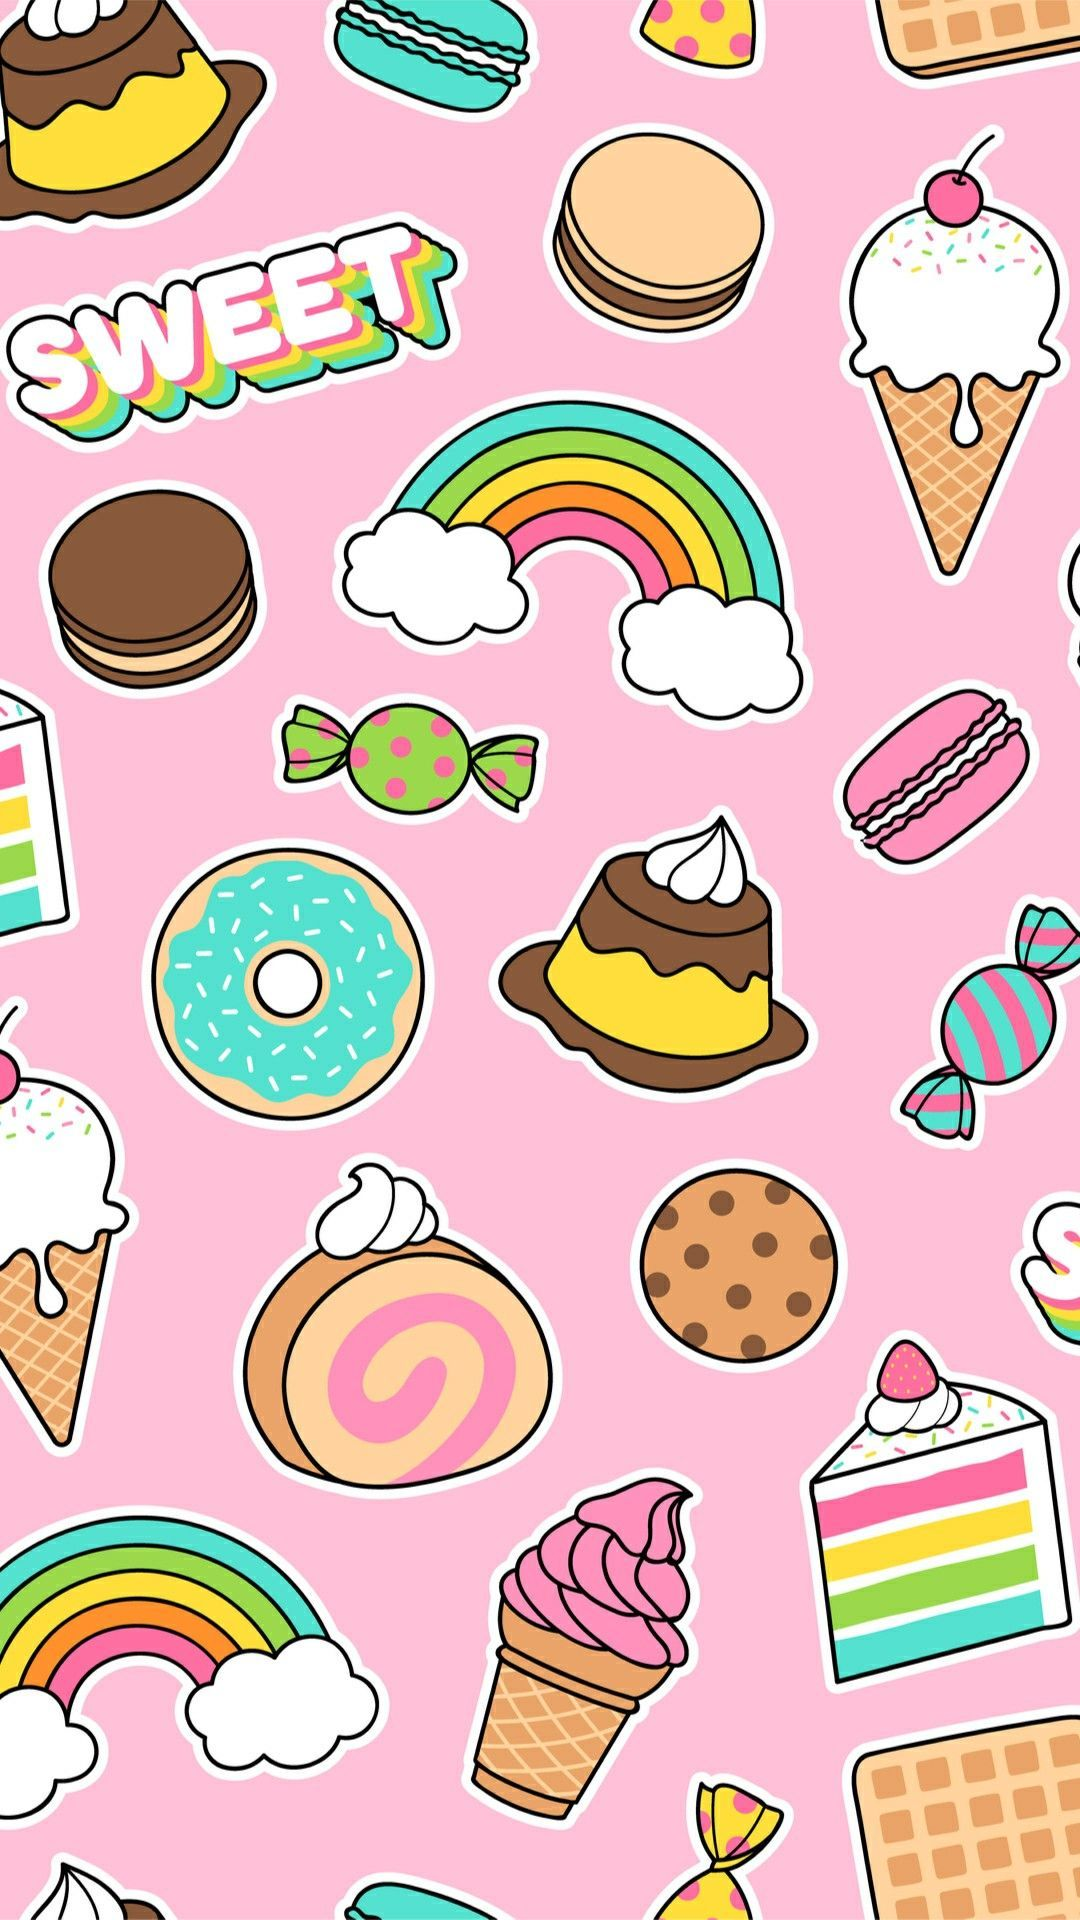 Cute Food Wallpapers Iphone Background Hupages Download Iphone Wallpapers Cute Food Wallpaper Cupcakes Wallpaper Wallpaper Iphone Cute